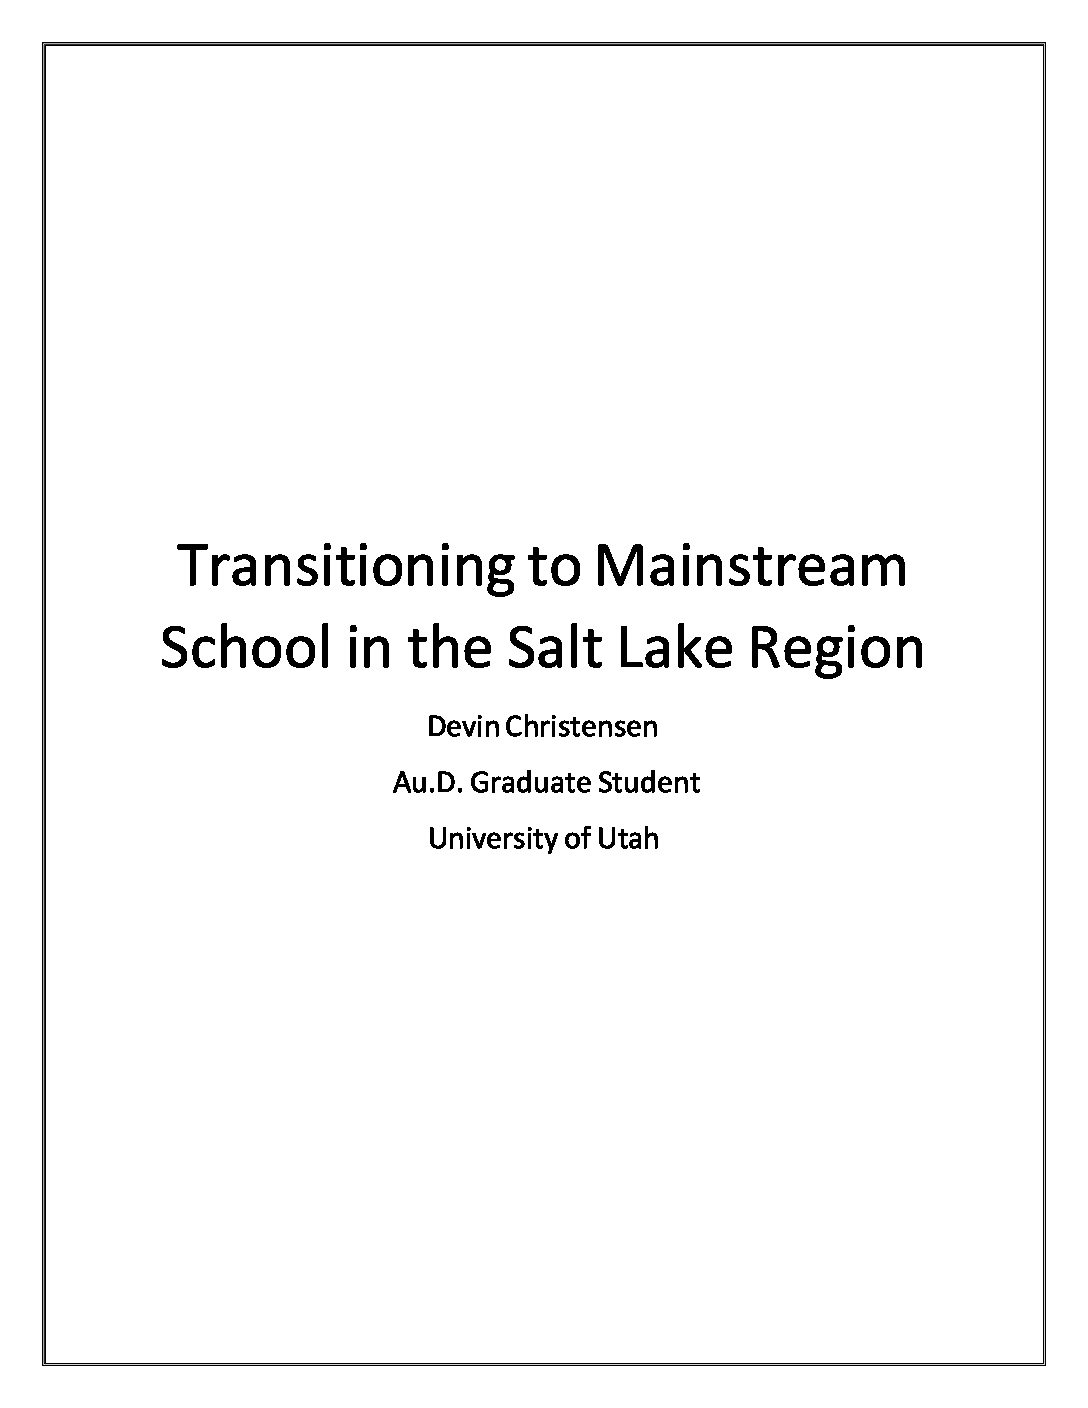 Transitioning to Mainstream School booklet